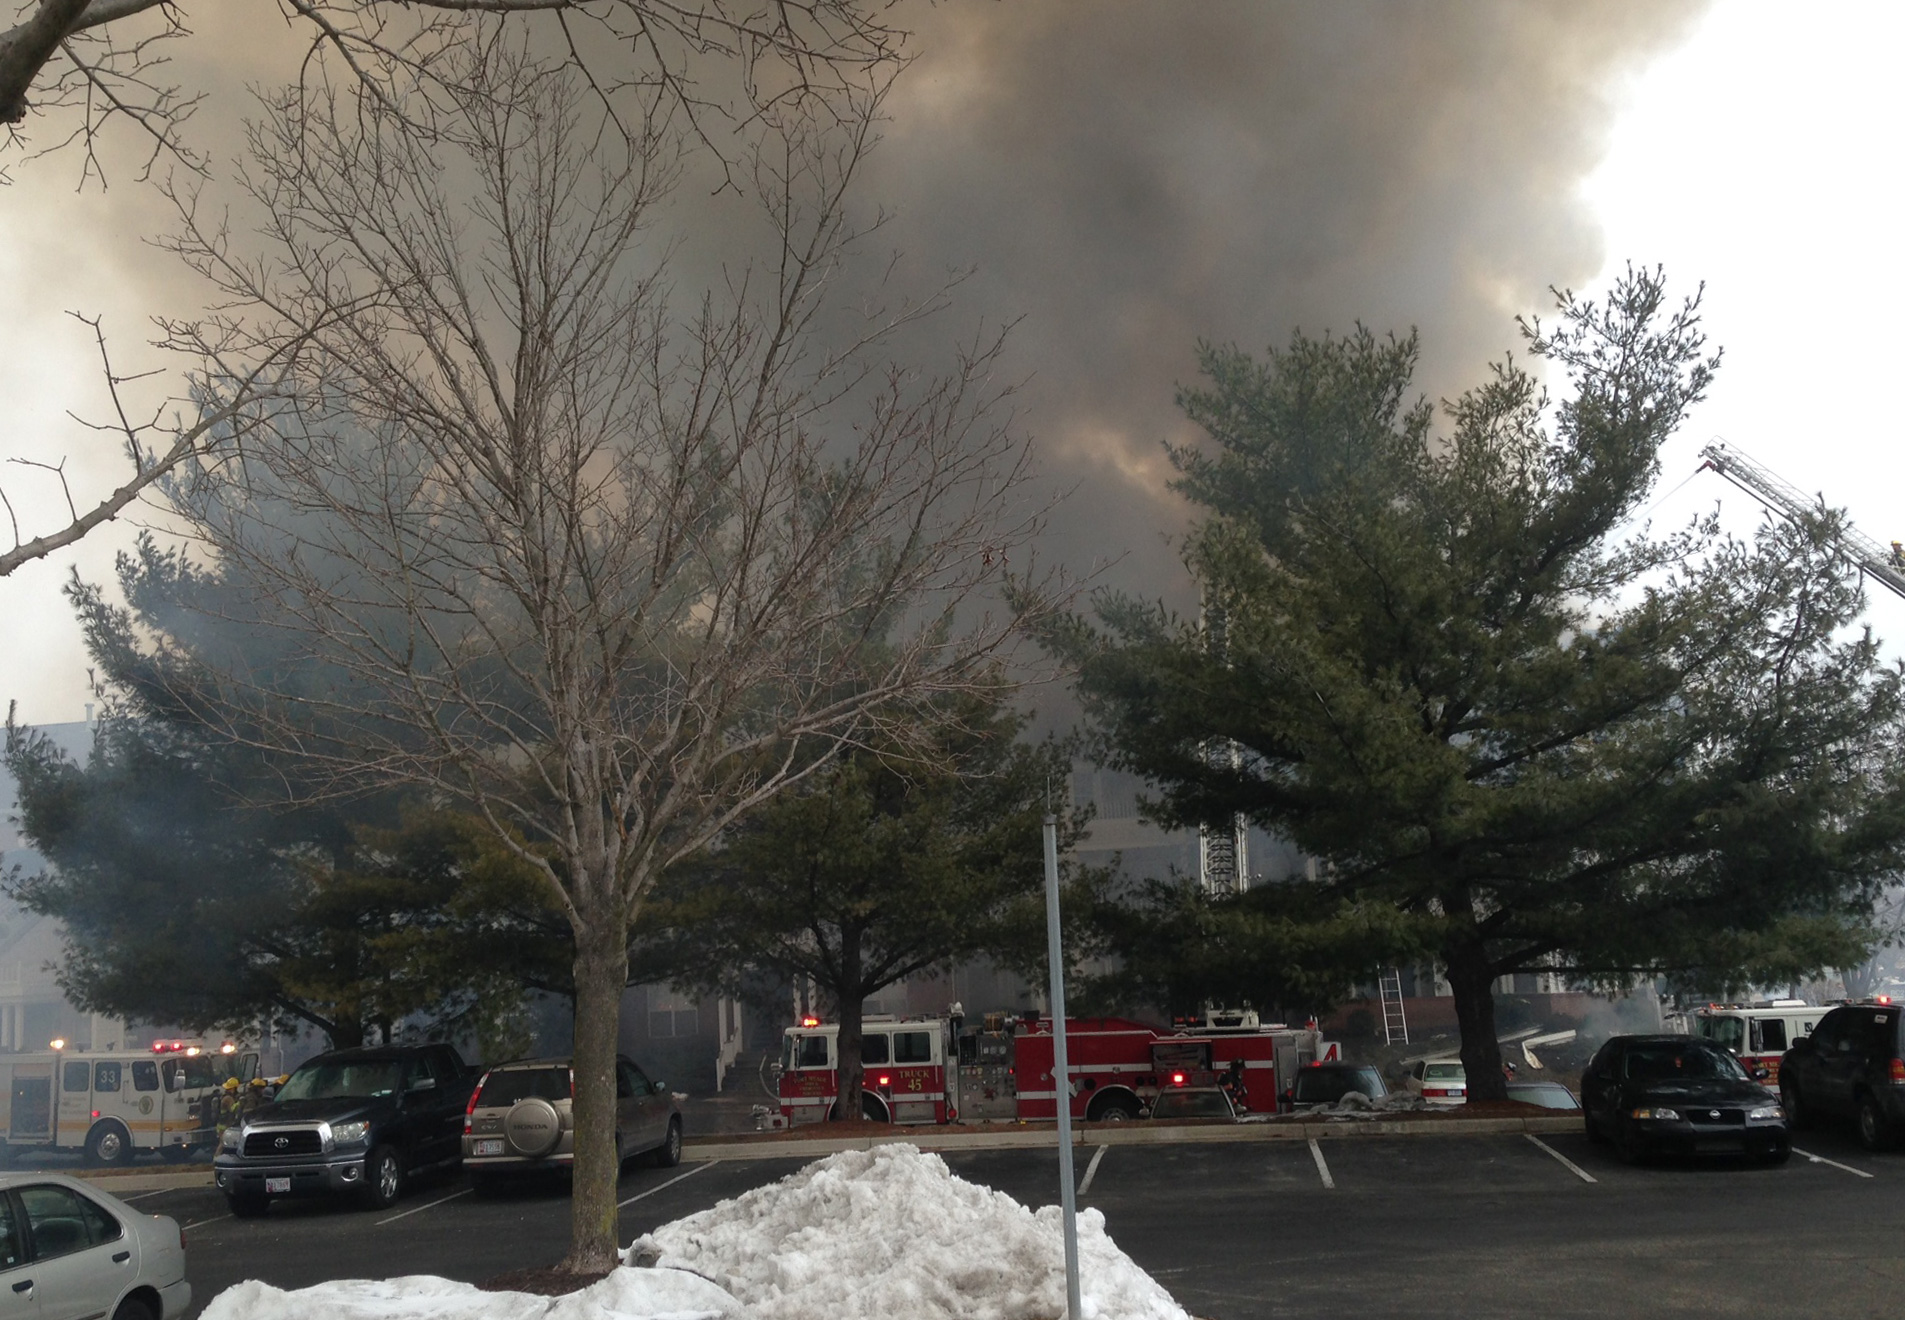 3-alarm fire displaces families in Odenton